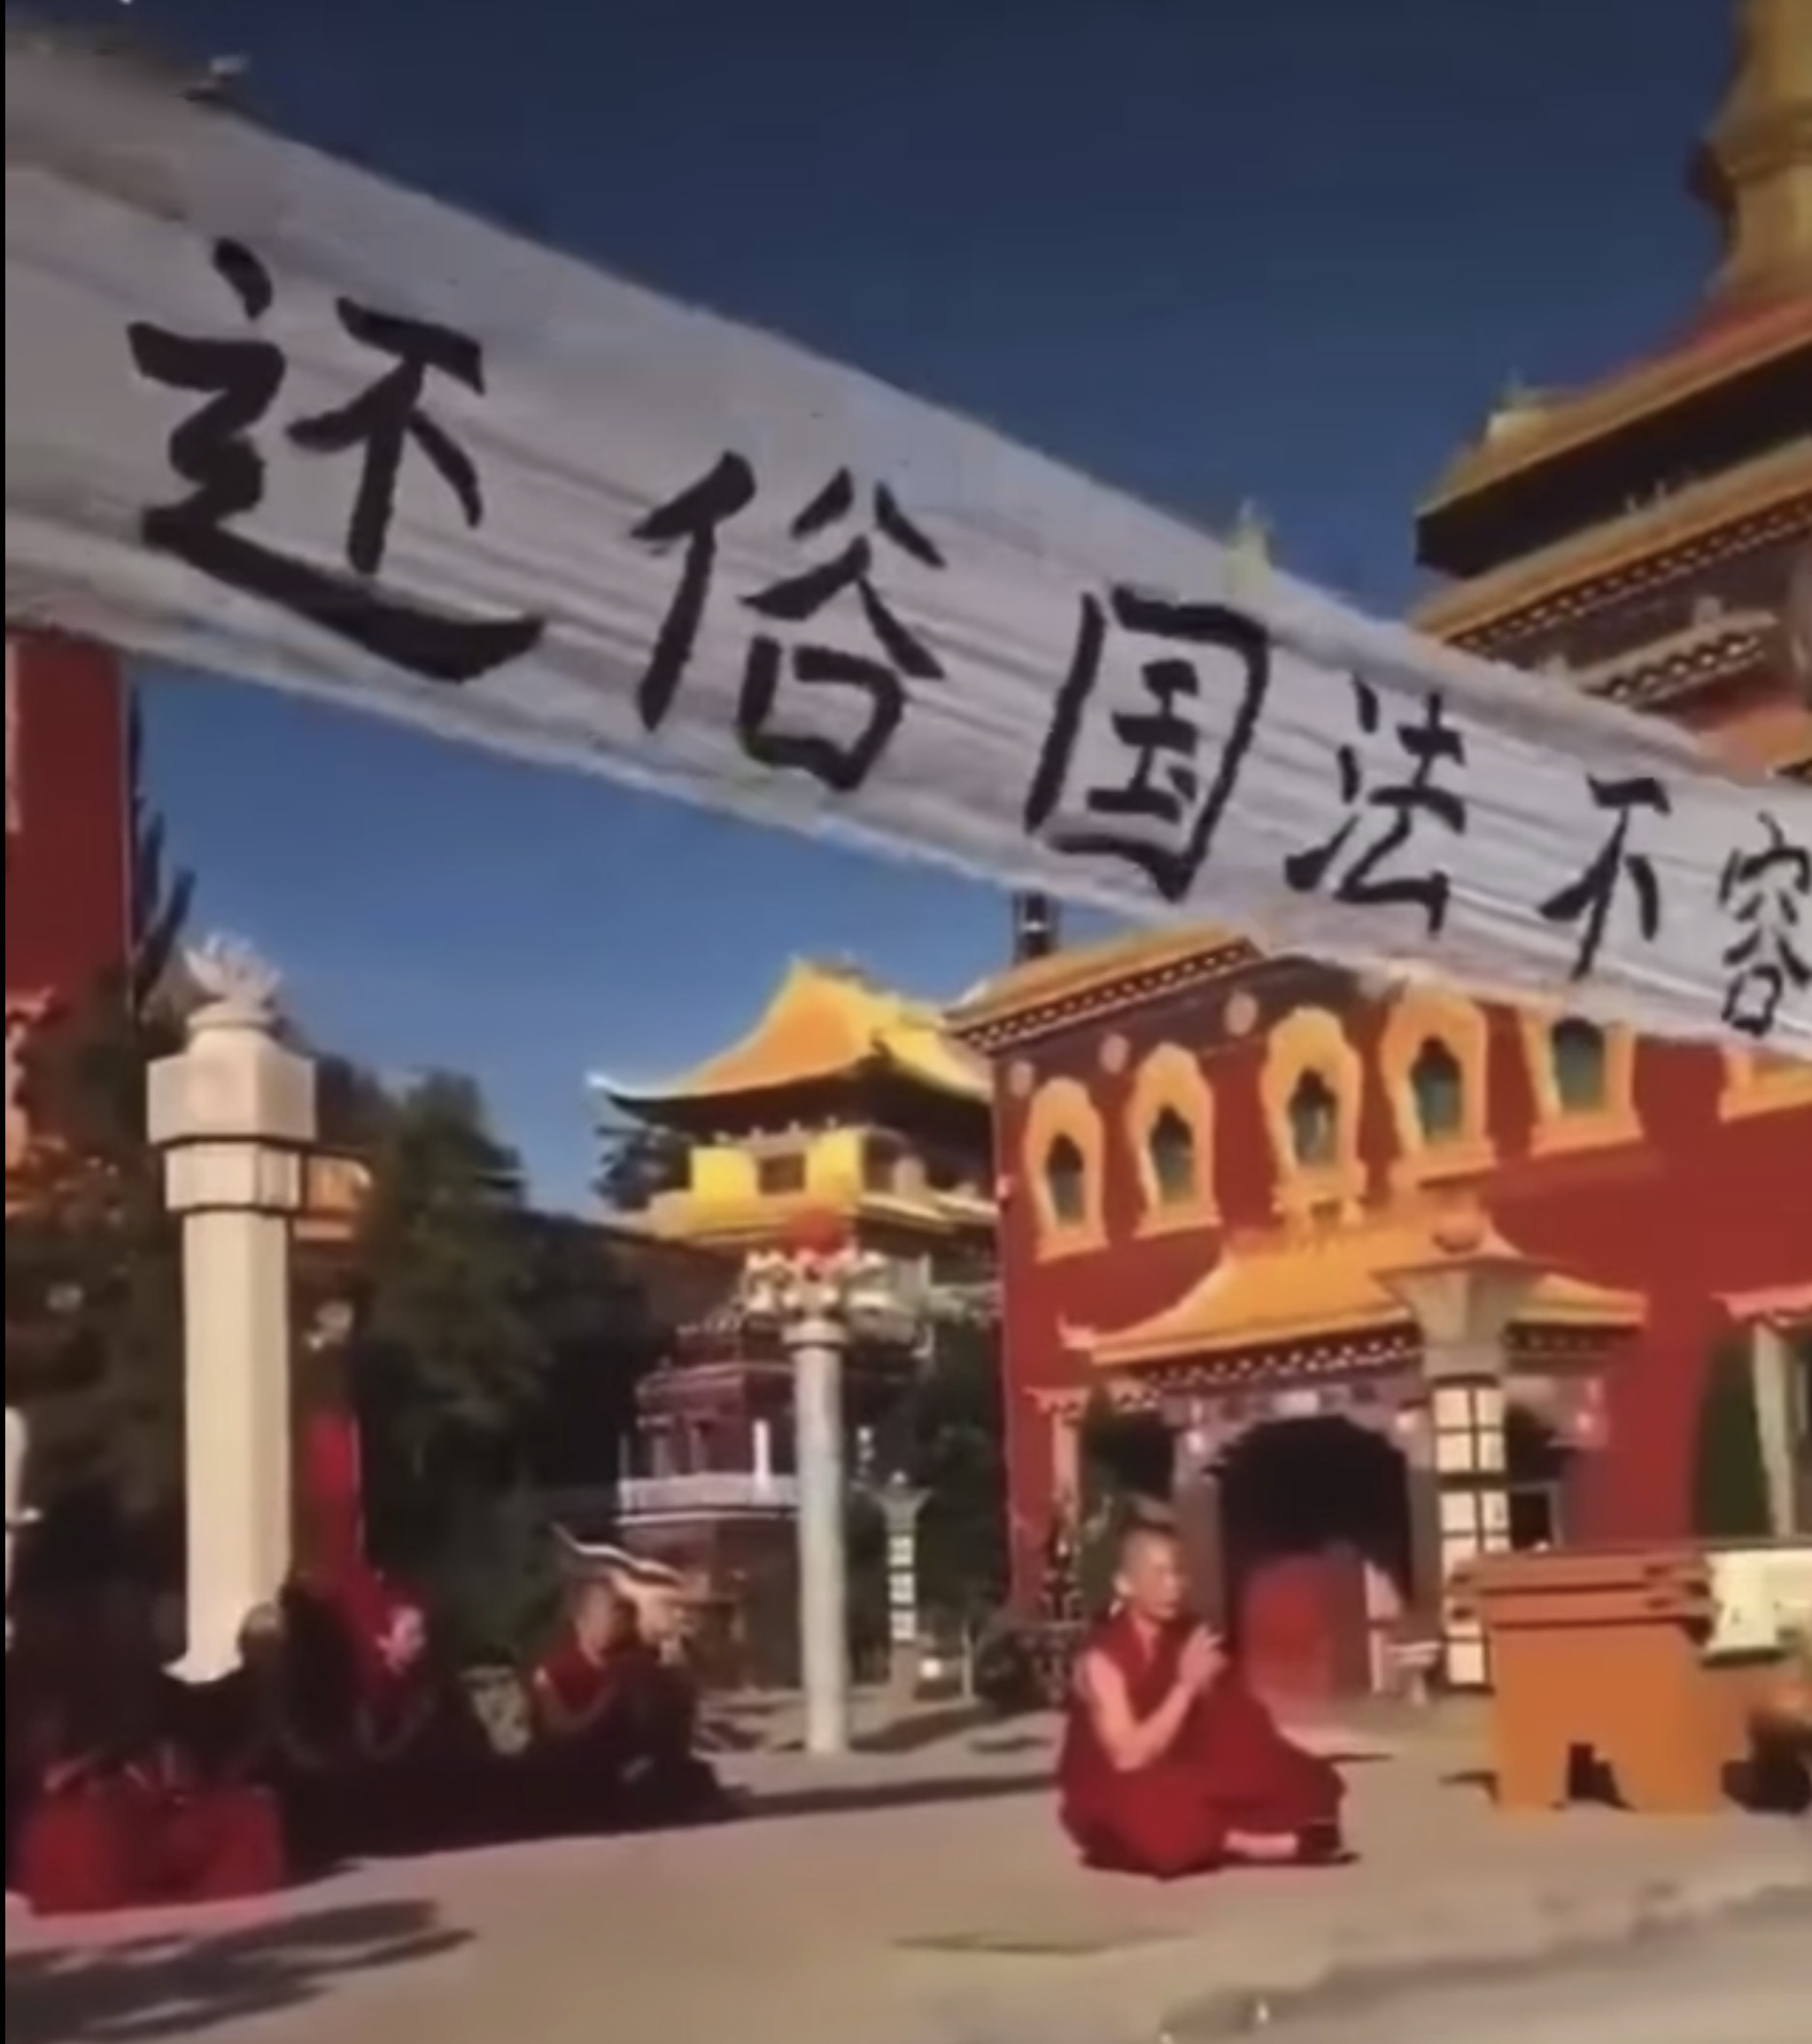 Monks and Nuns staged a sit-in protest agains the forced eviction by local Chinese authorities.